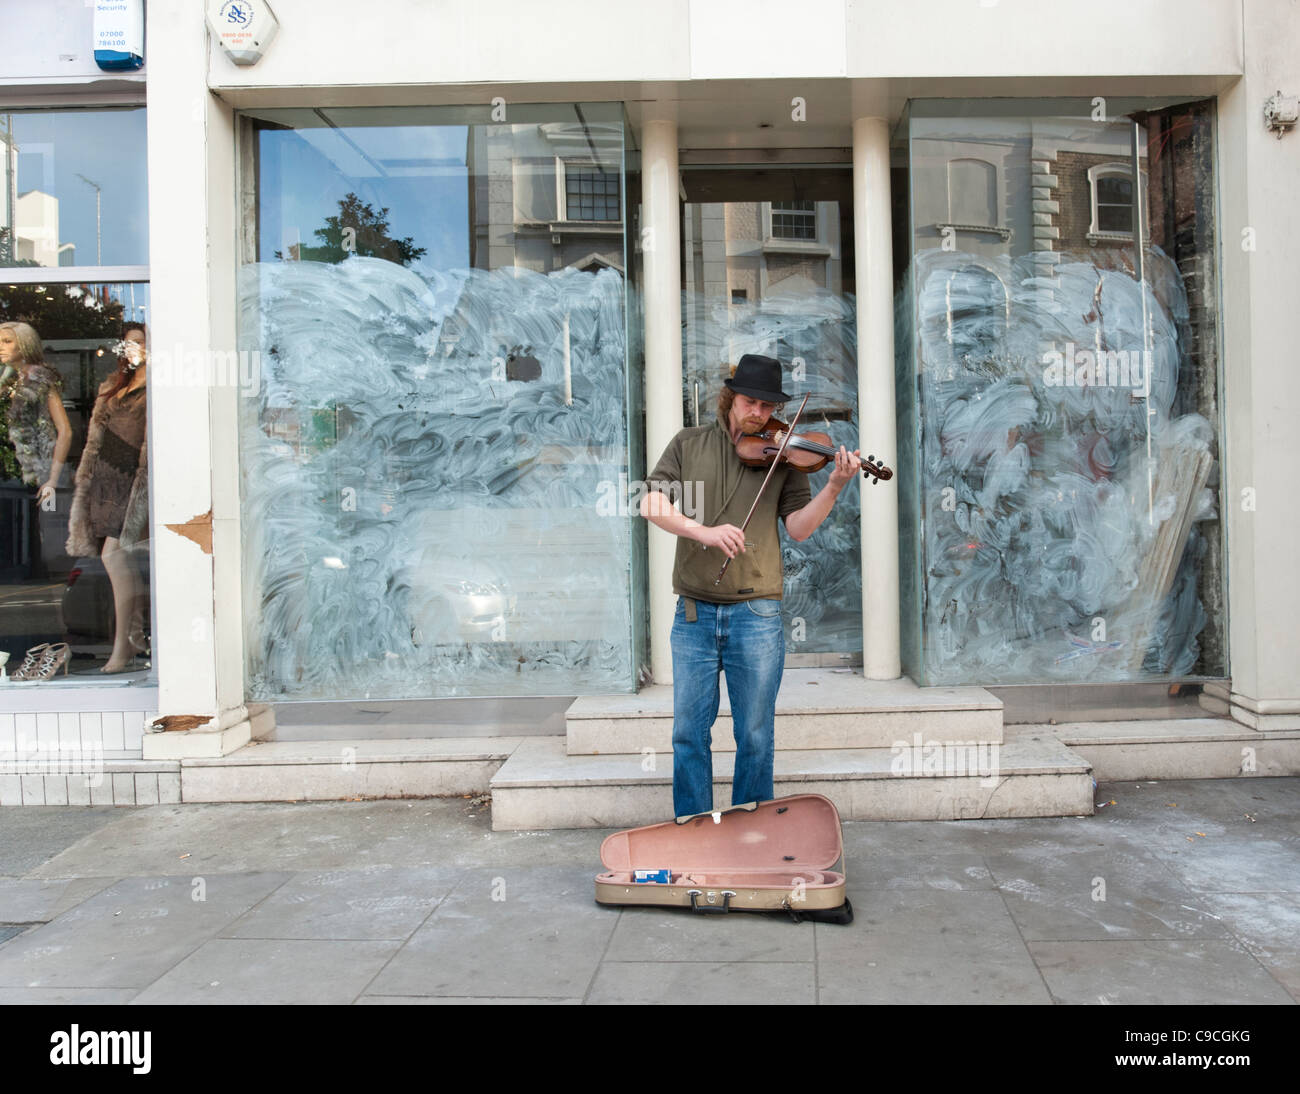 Busker playing violin outside closed down shop on the King's Road, London, UK - Stock Image